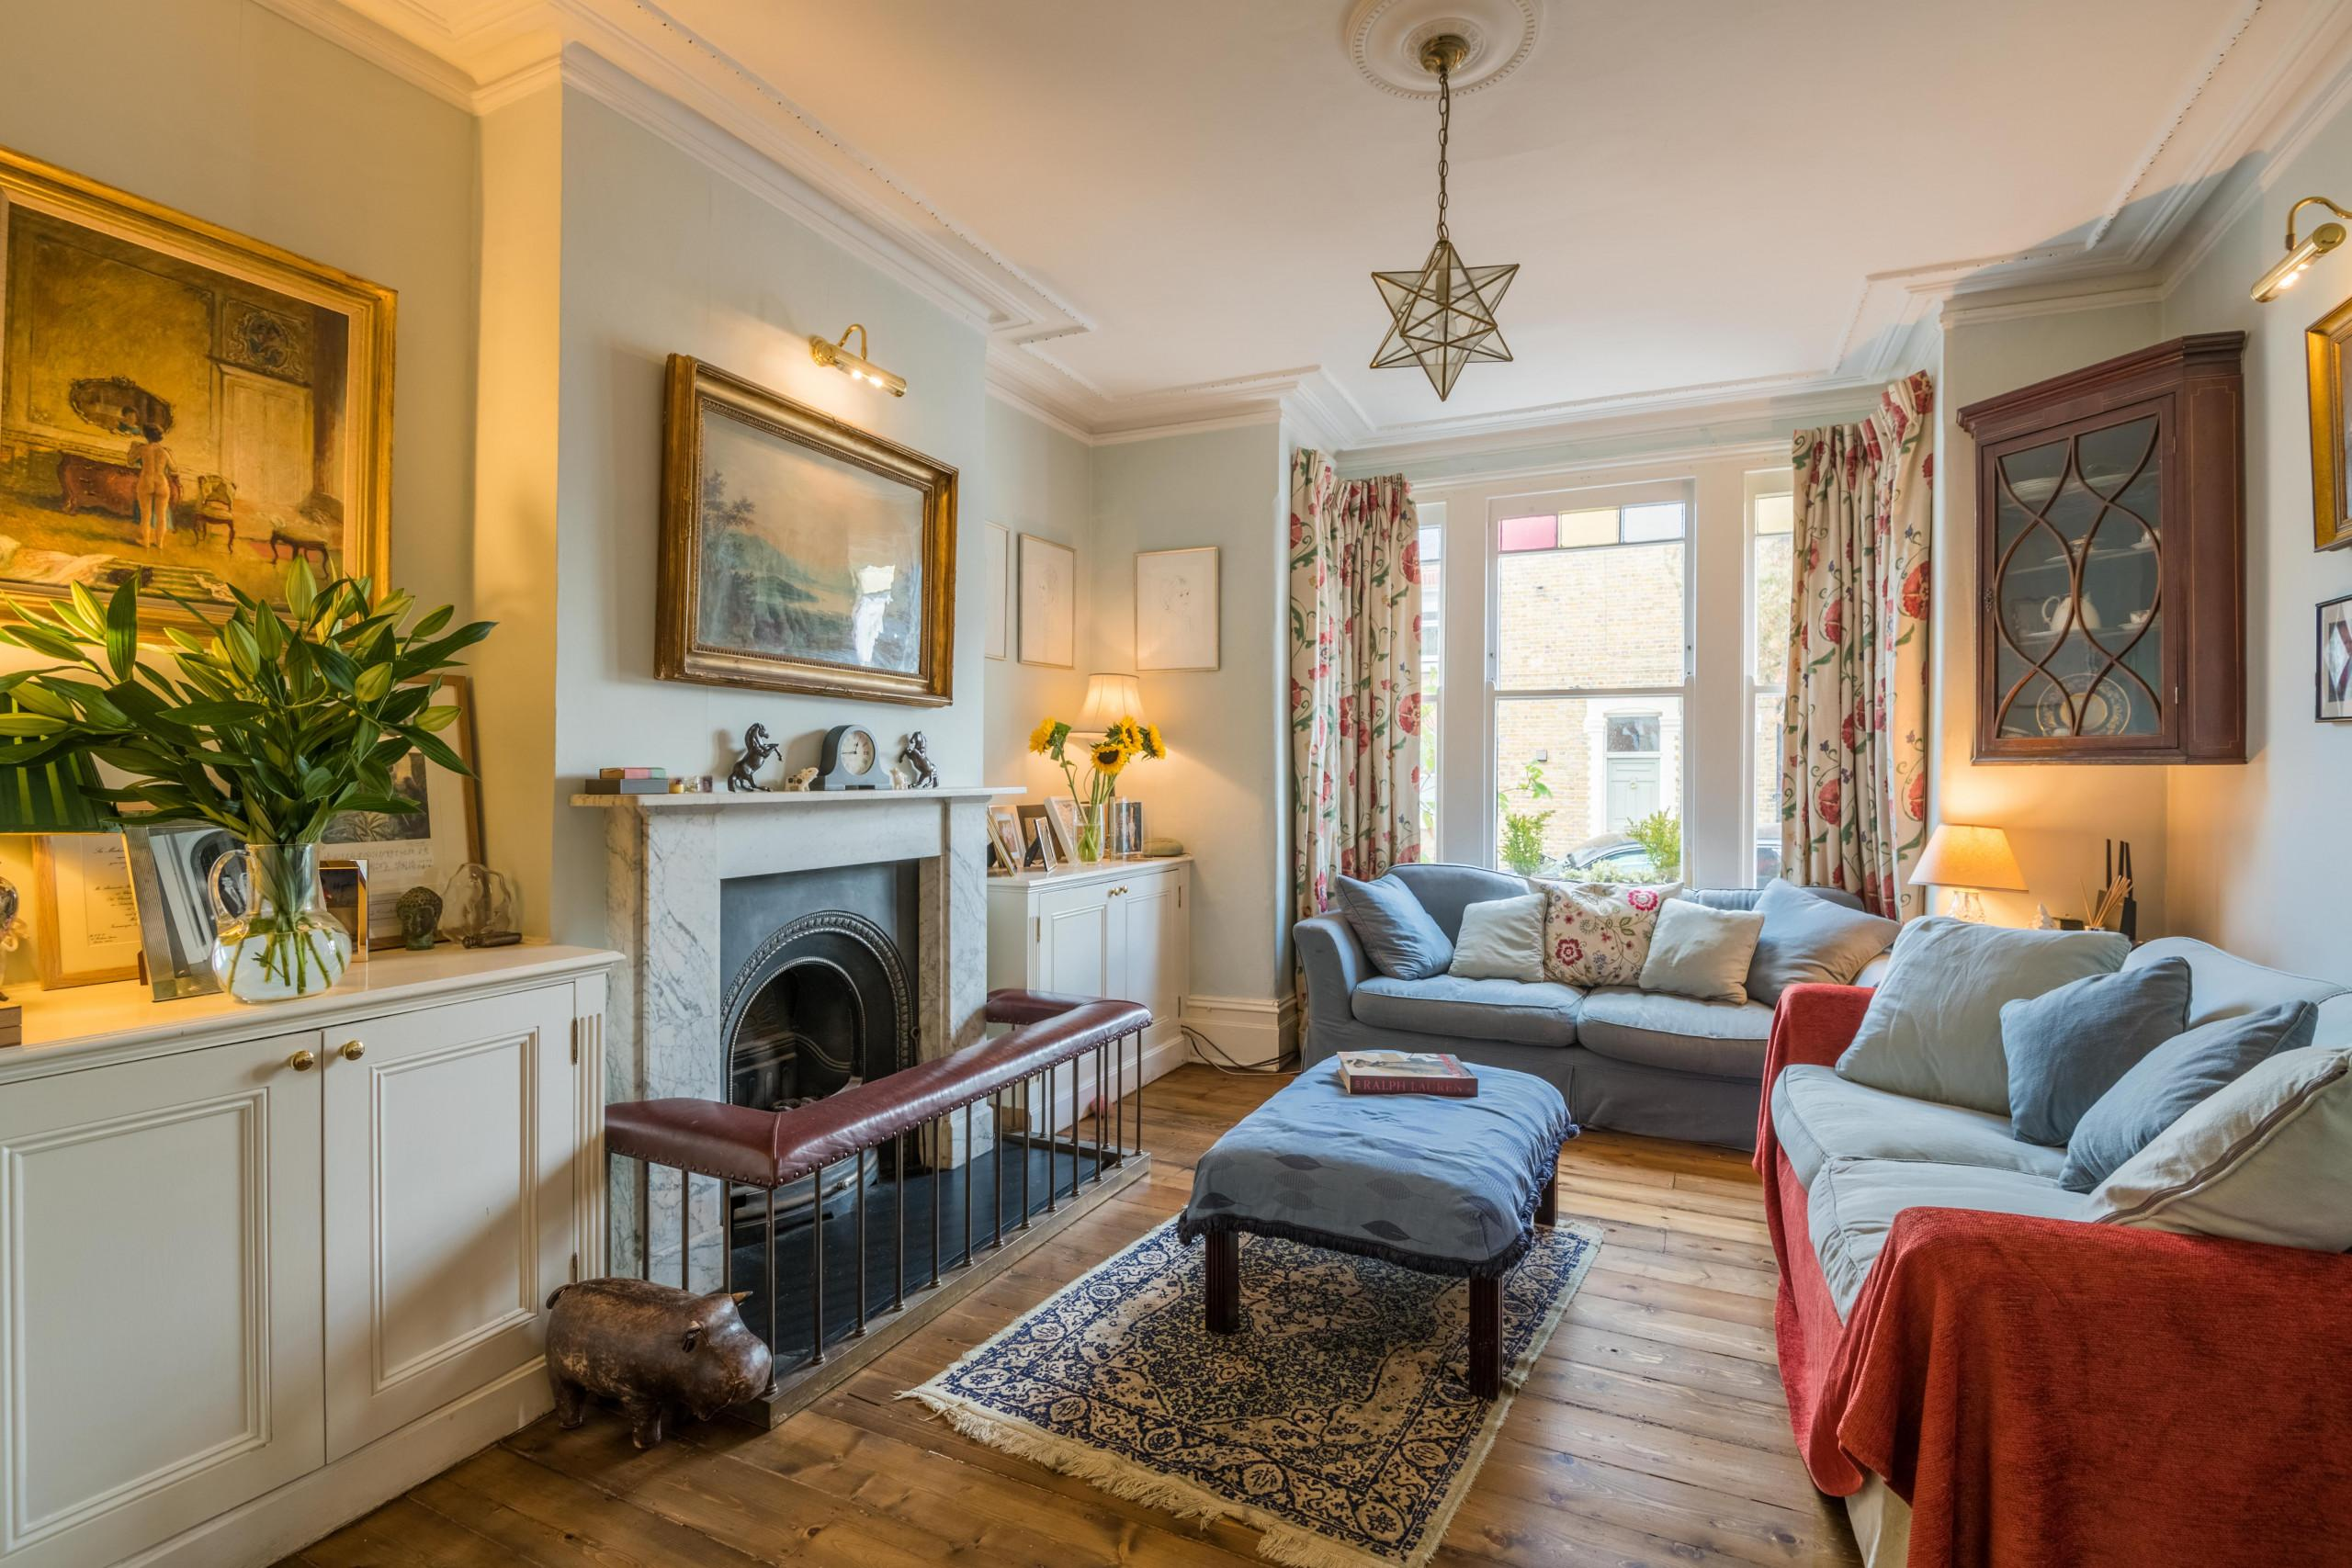 Property Image 1 - Sensational Wandsworth Home by King George's Park